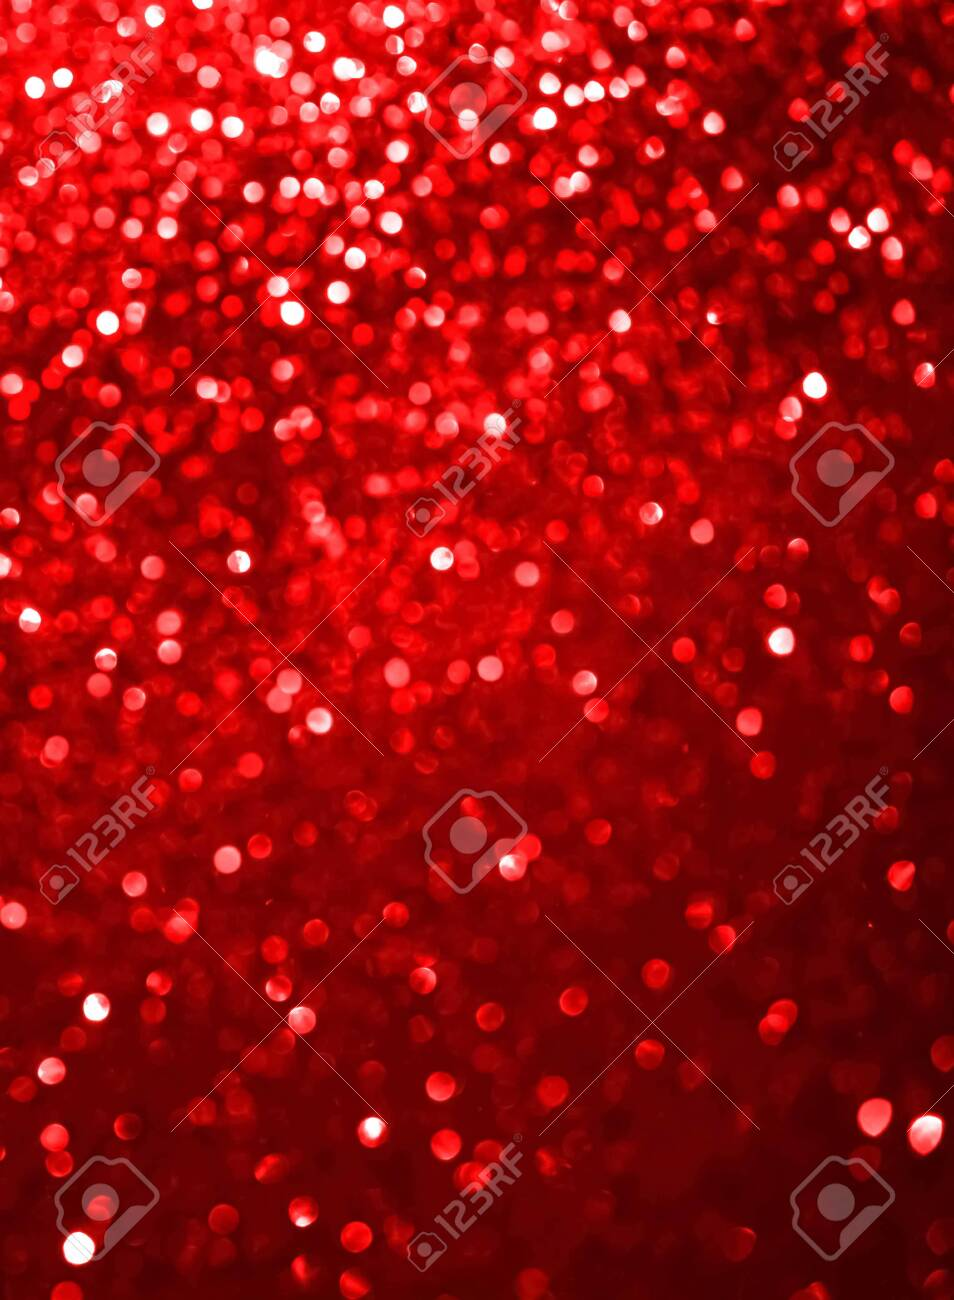 Abstract coral red defocused bokeh glitter sparkle confetti burst background. Festive concept.Vertical format. - 138626210